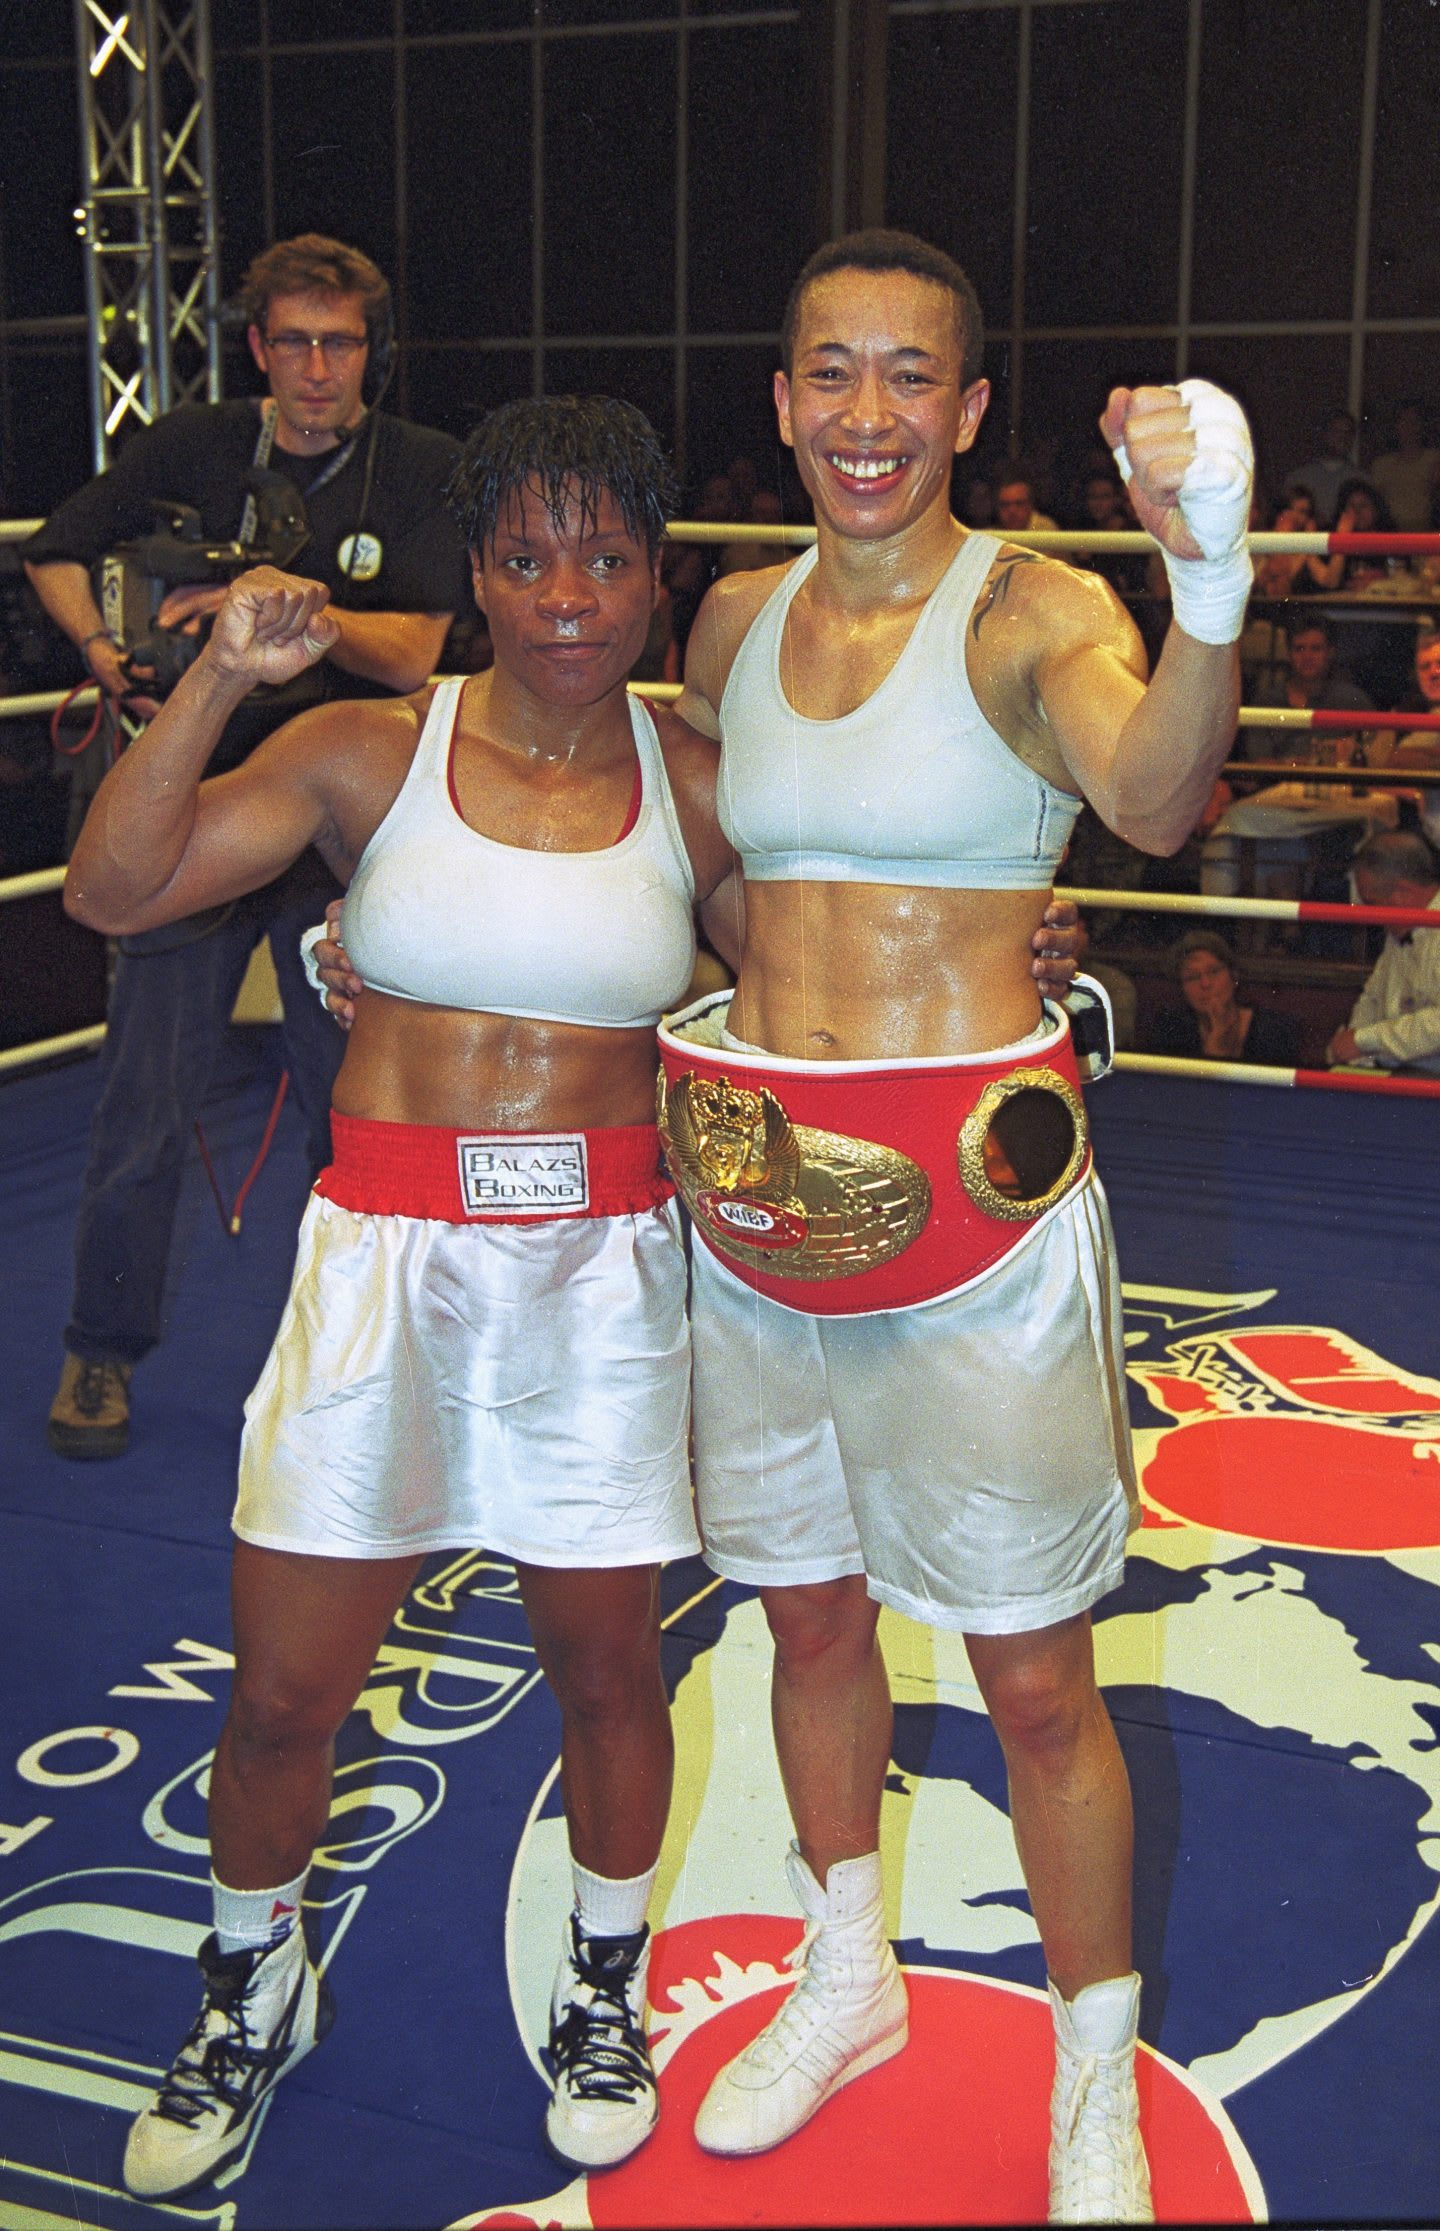 Michele-Aboro-vs-Brown-after-fight-celebration-championship-belt-smiling